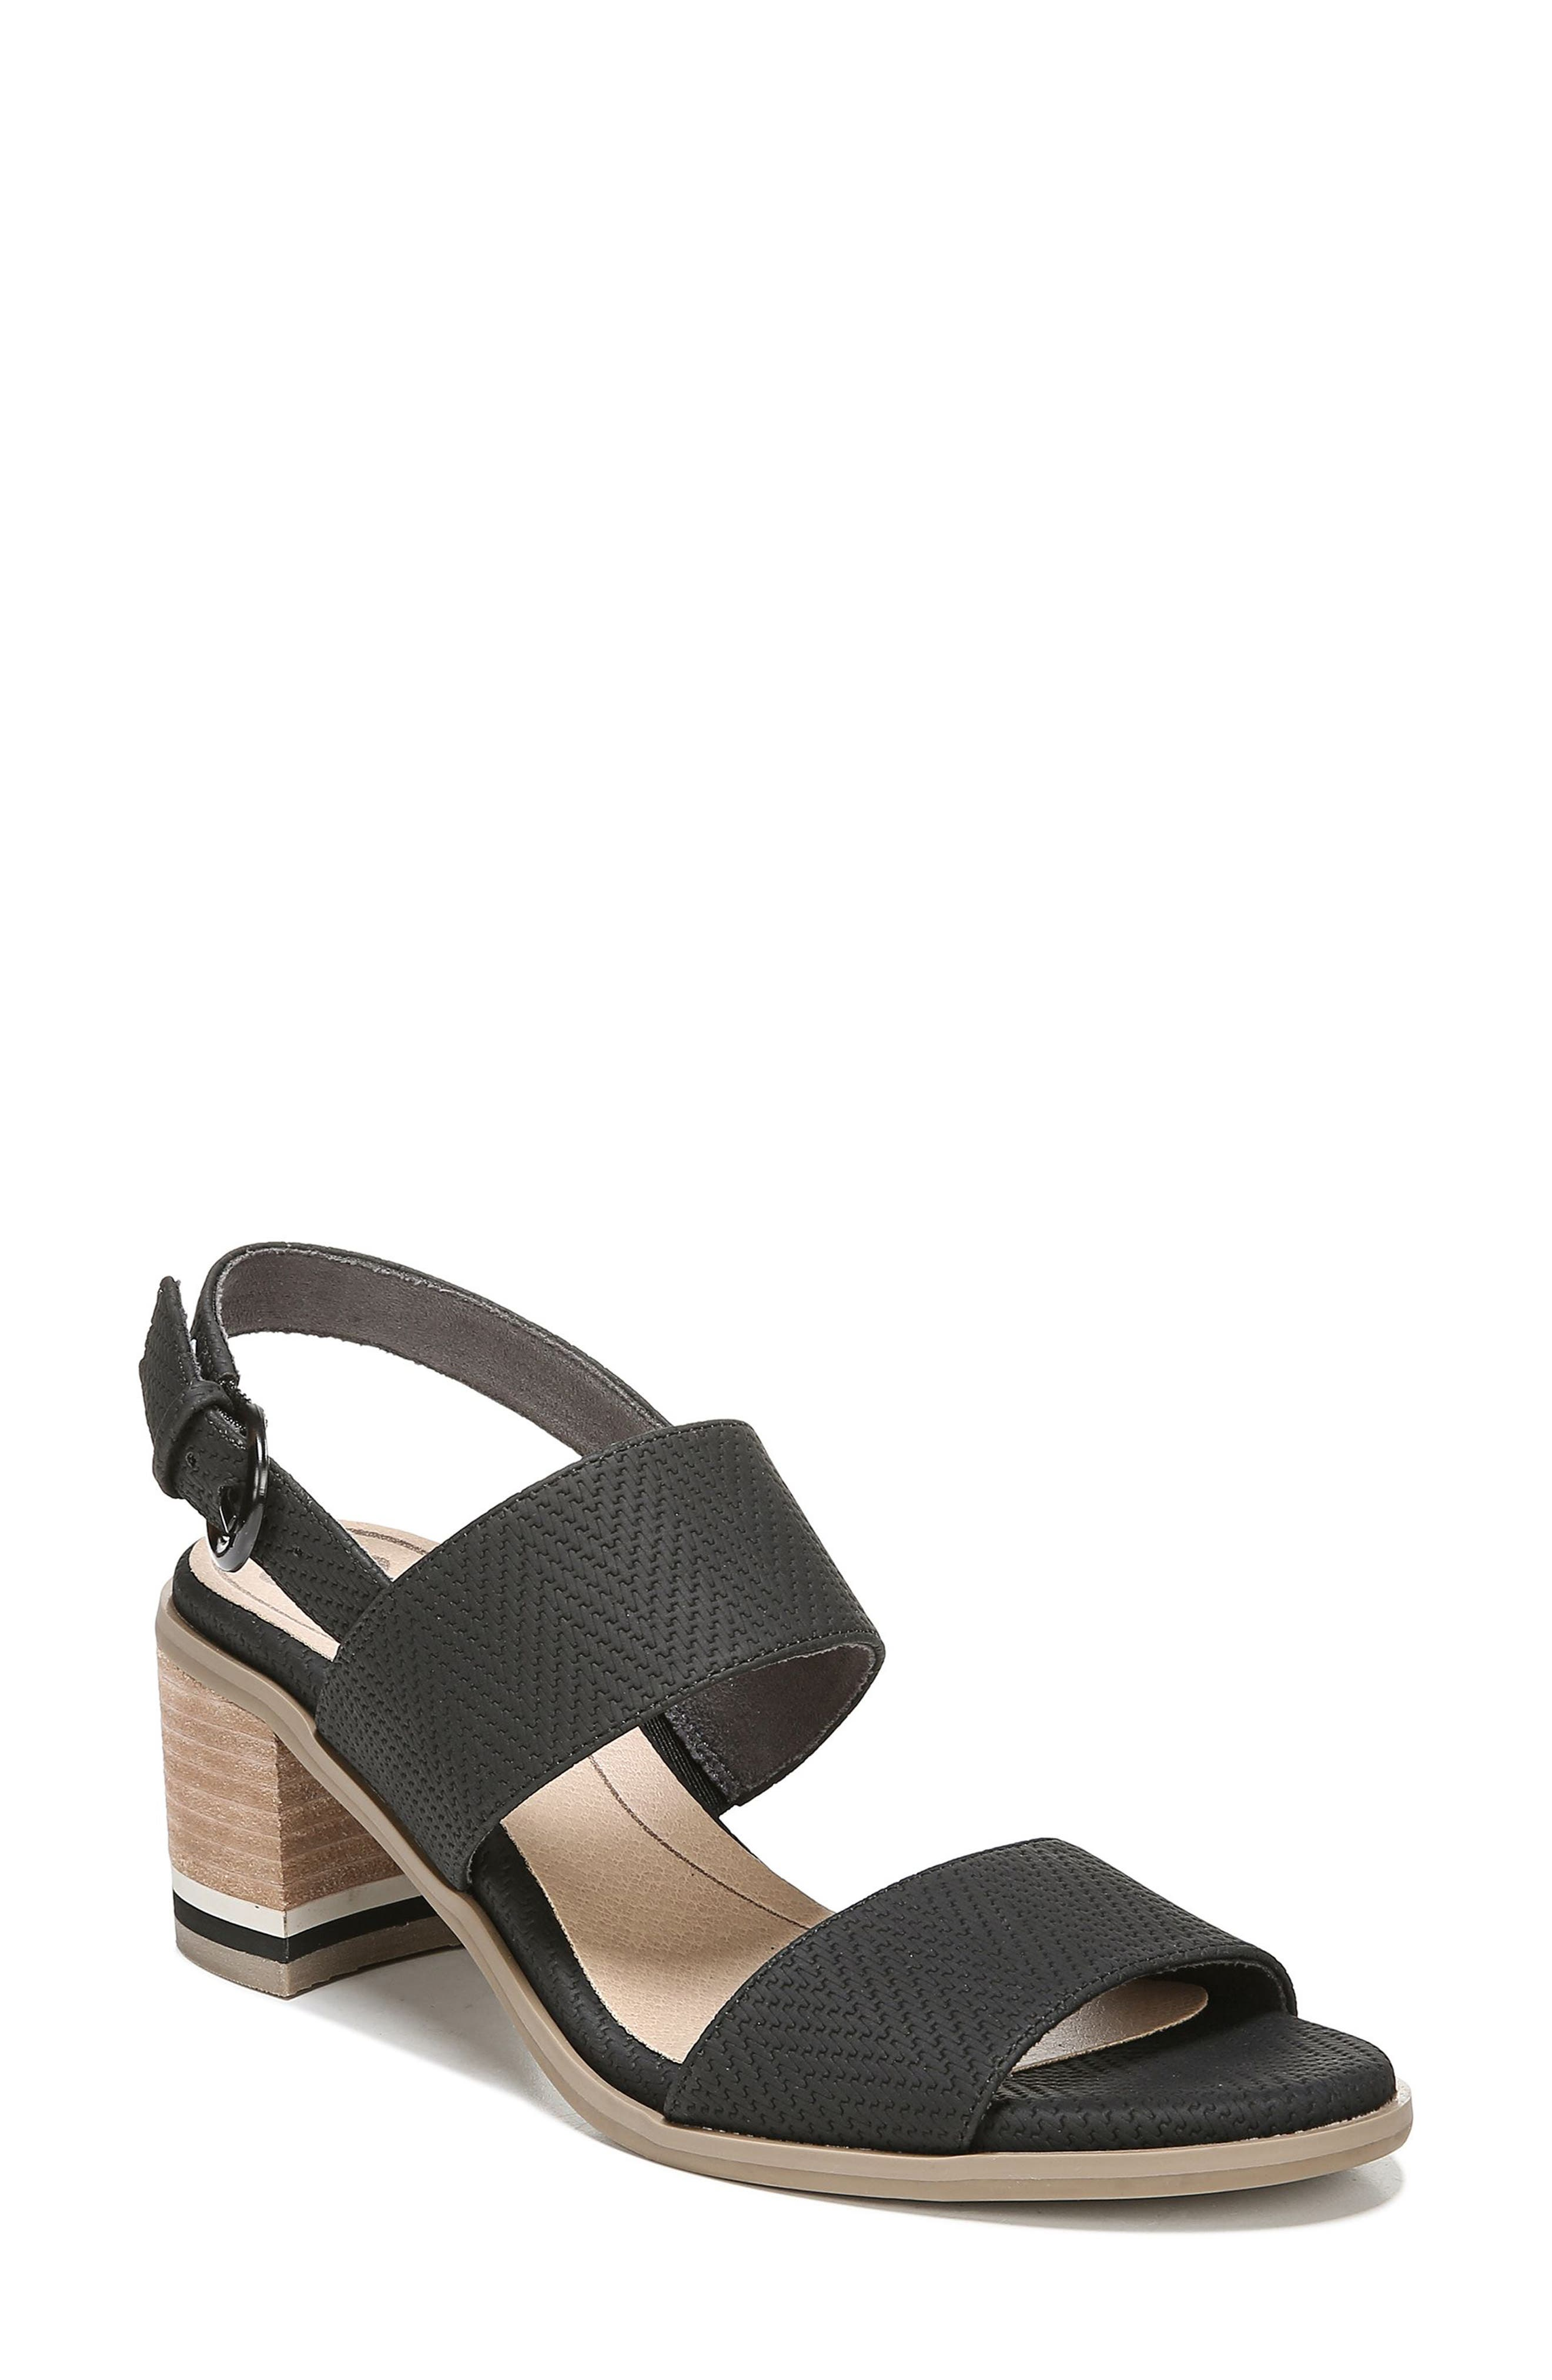 Sure Thing Sandal, Main, color, 001